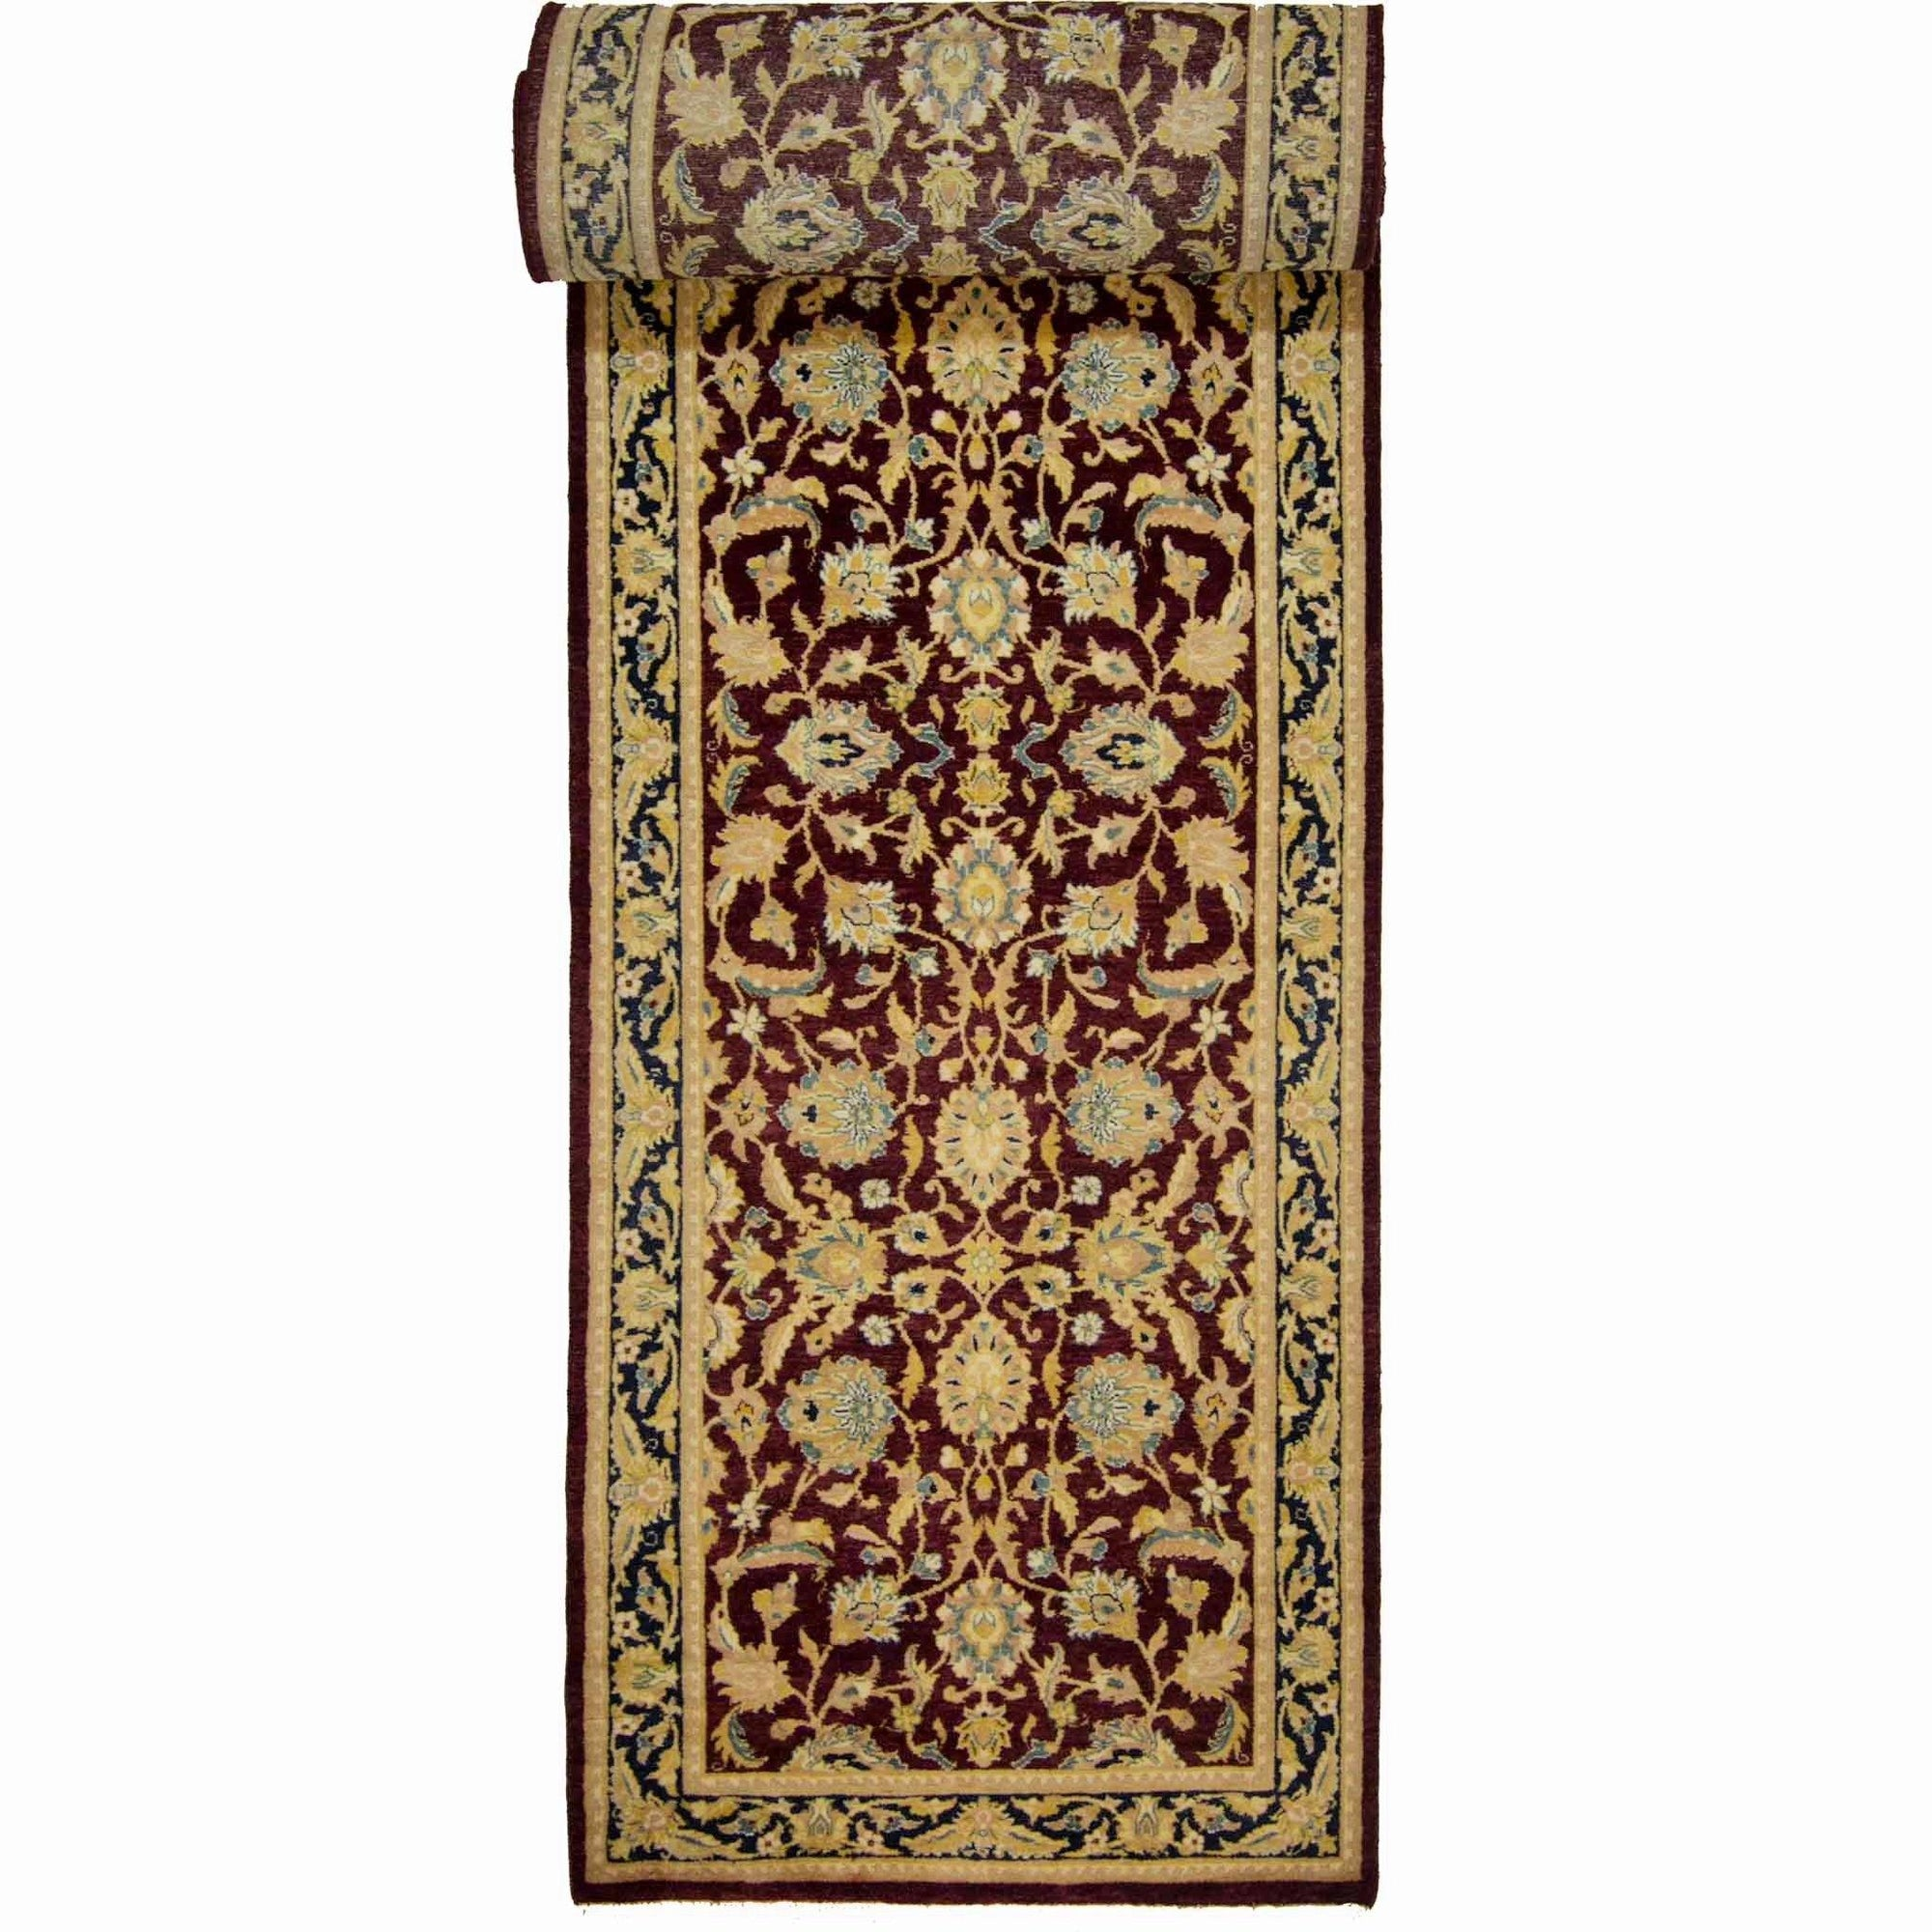 Fine Hand-knotted Wool Kashan Runner 78cm x 365cm Persian-Rug | House-of-Haghi | NewMarket | Auckland | NZ | Handmade Persian Rugs | Hand Knotted Persian Rugs